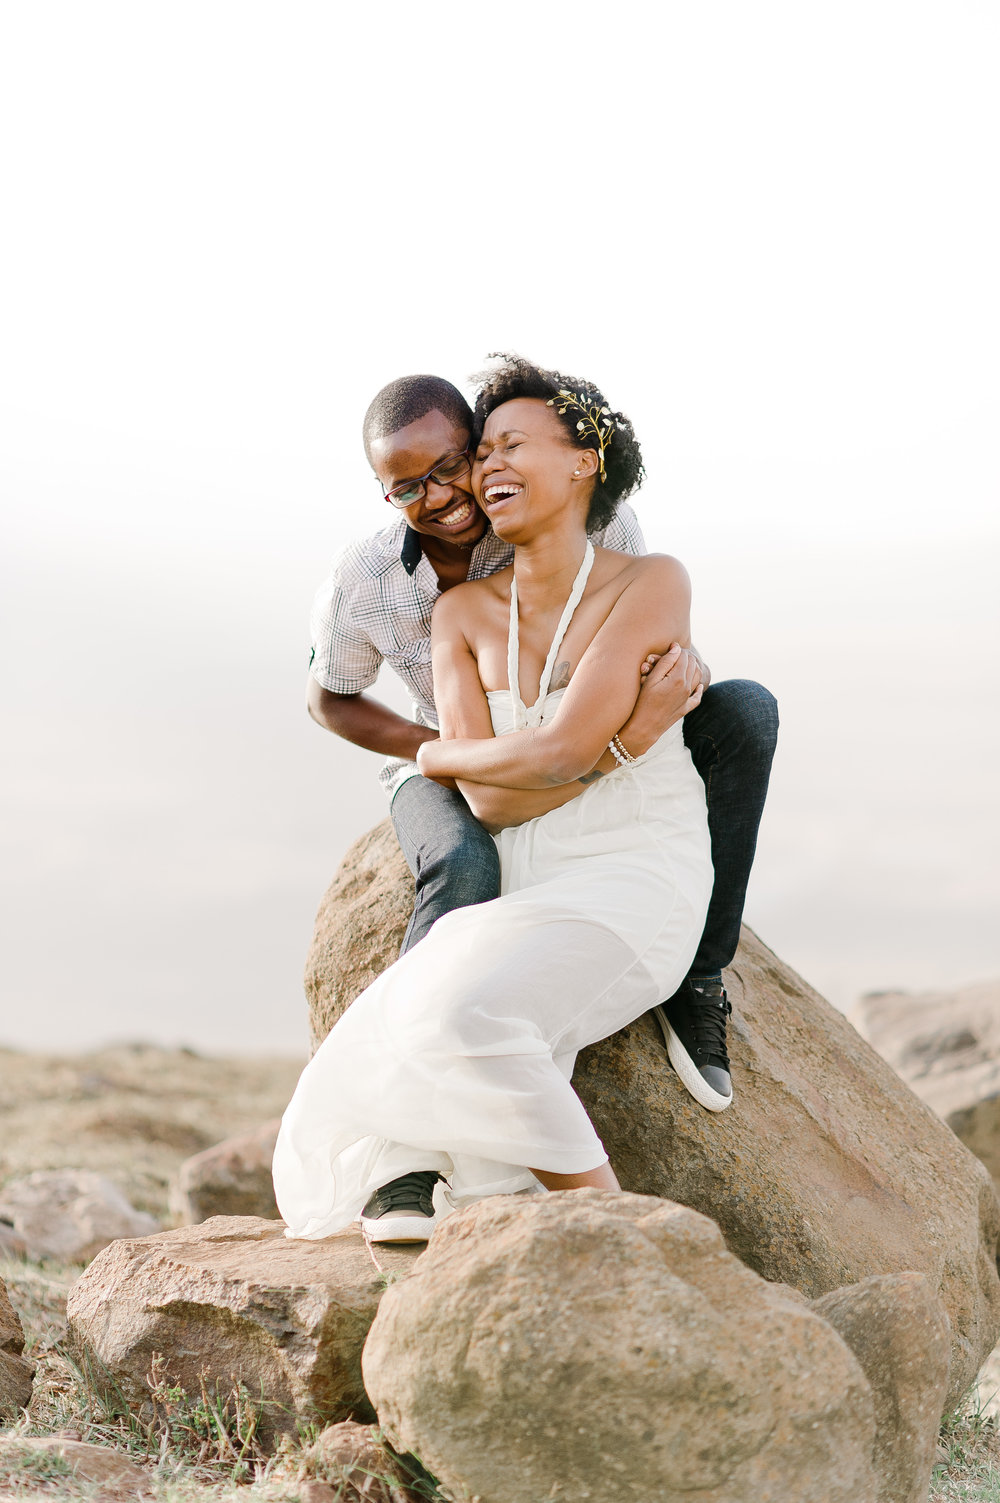 Anna-Hari-Photography-Kenyan-Wedding-Photographer-Ngong-Hills-Elopement-Kenya-49.jpg